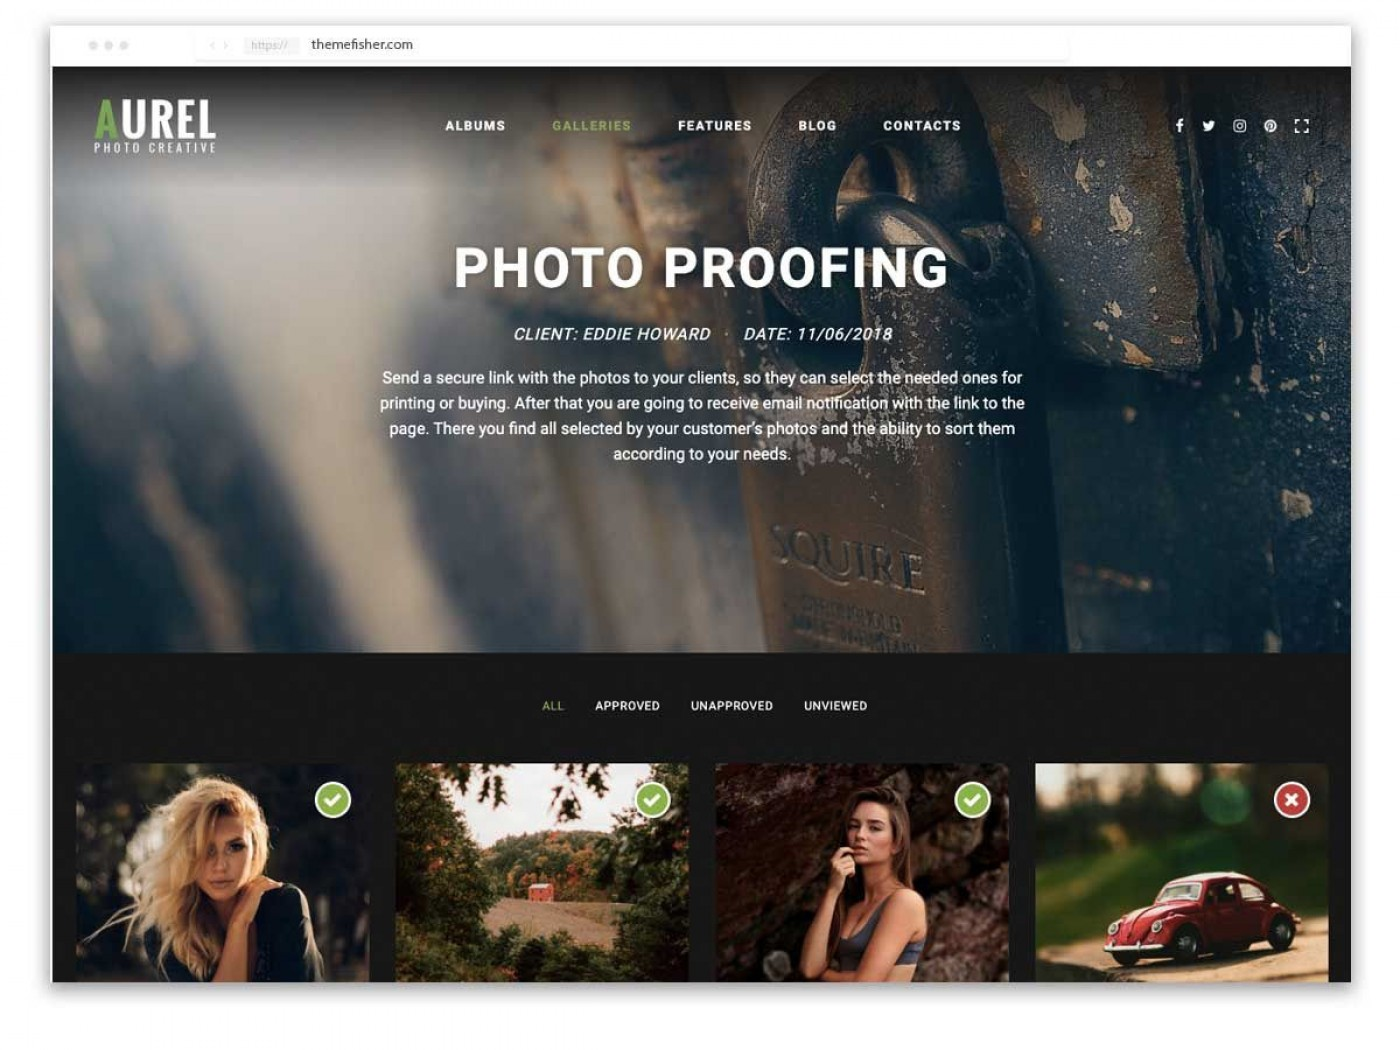 000 Unusual Web Template For Photographer Image  Photography1400